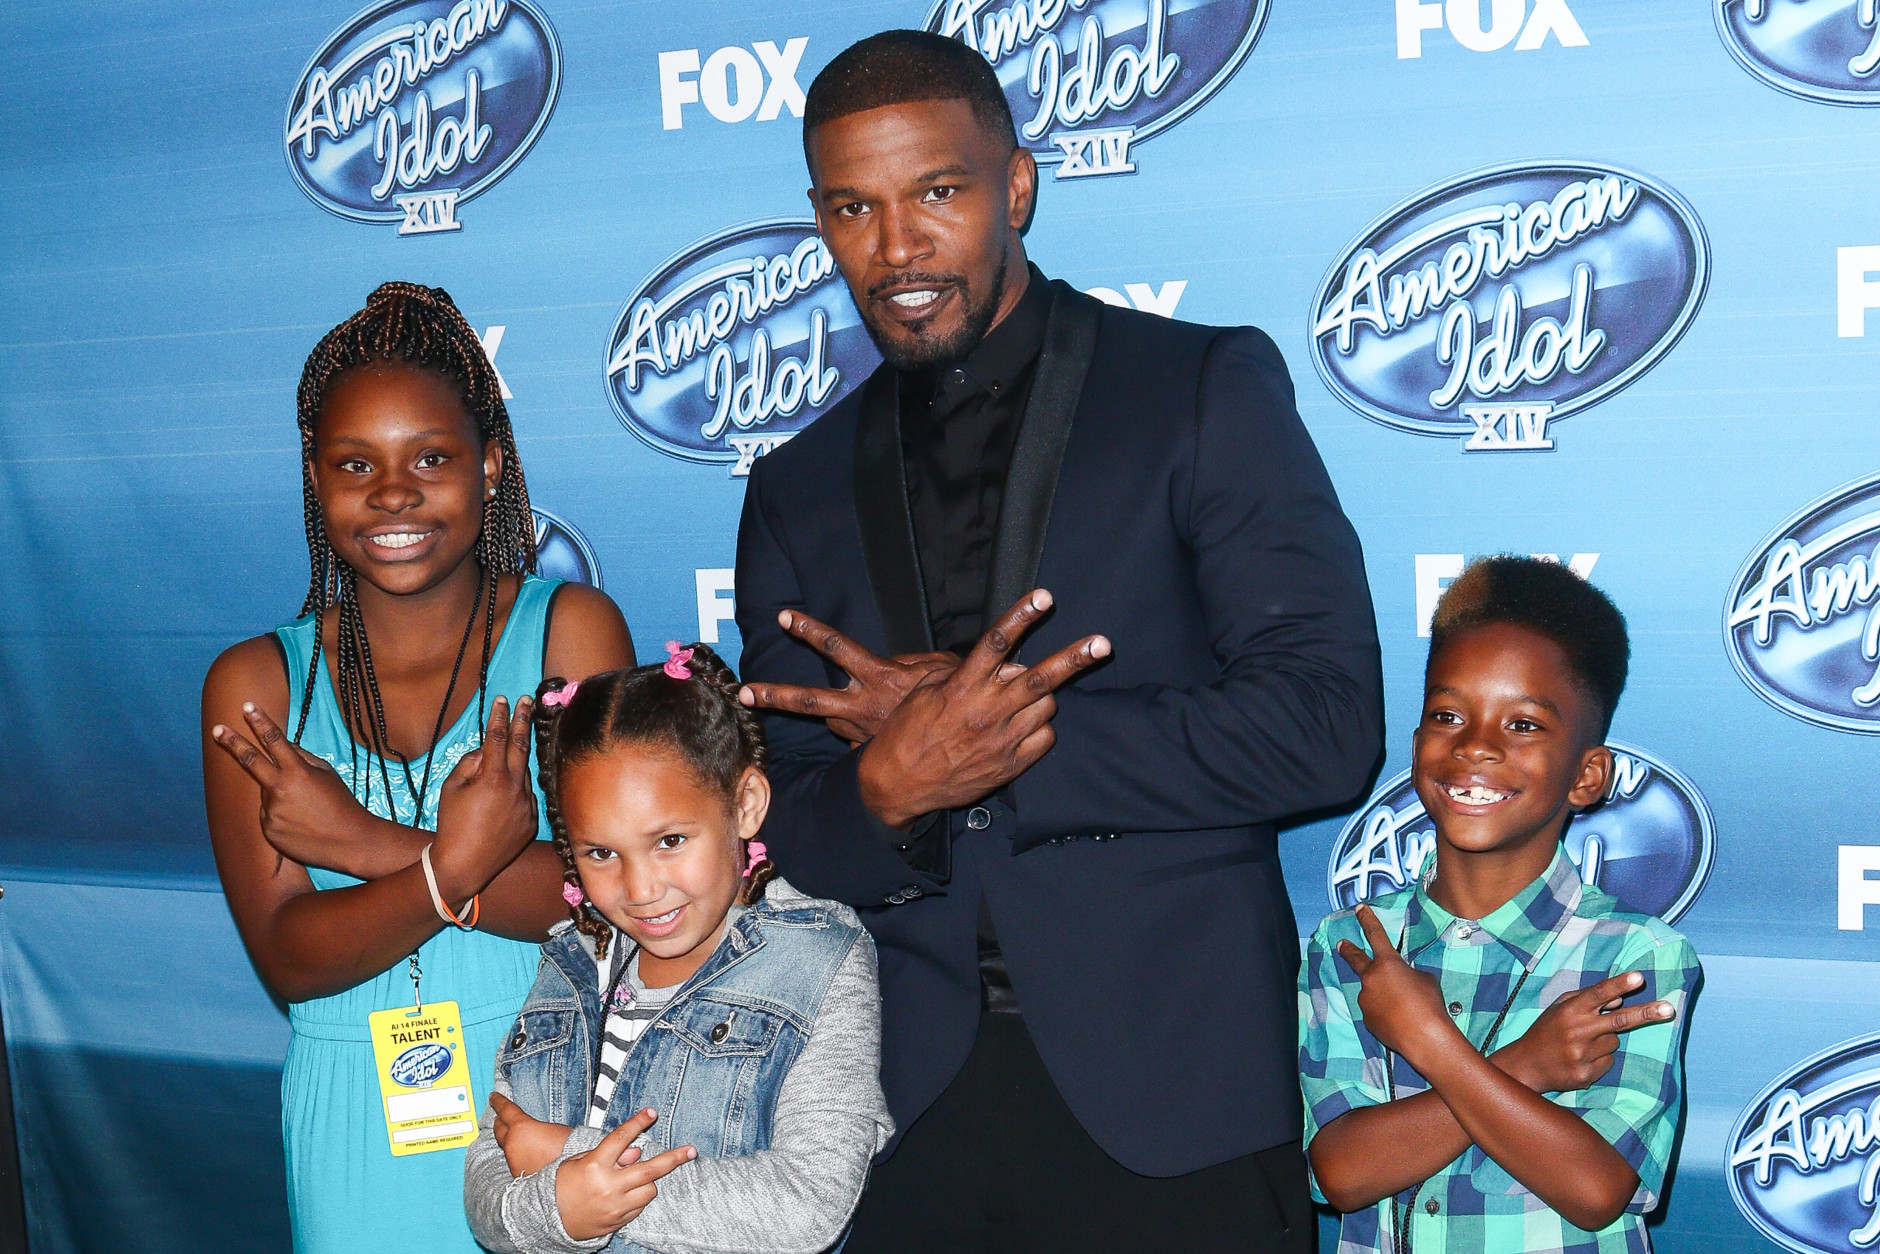 Jamie Foxx, left, and kids pose in the press room at the American Idol XIV finale at the Dolby Theatre on Wednesday, May 13, 2015, in Los Angeles. (Photo by John Salangsang/Invision/AP)